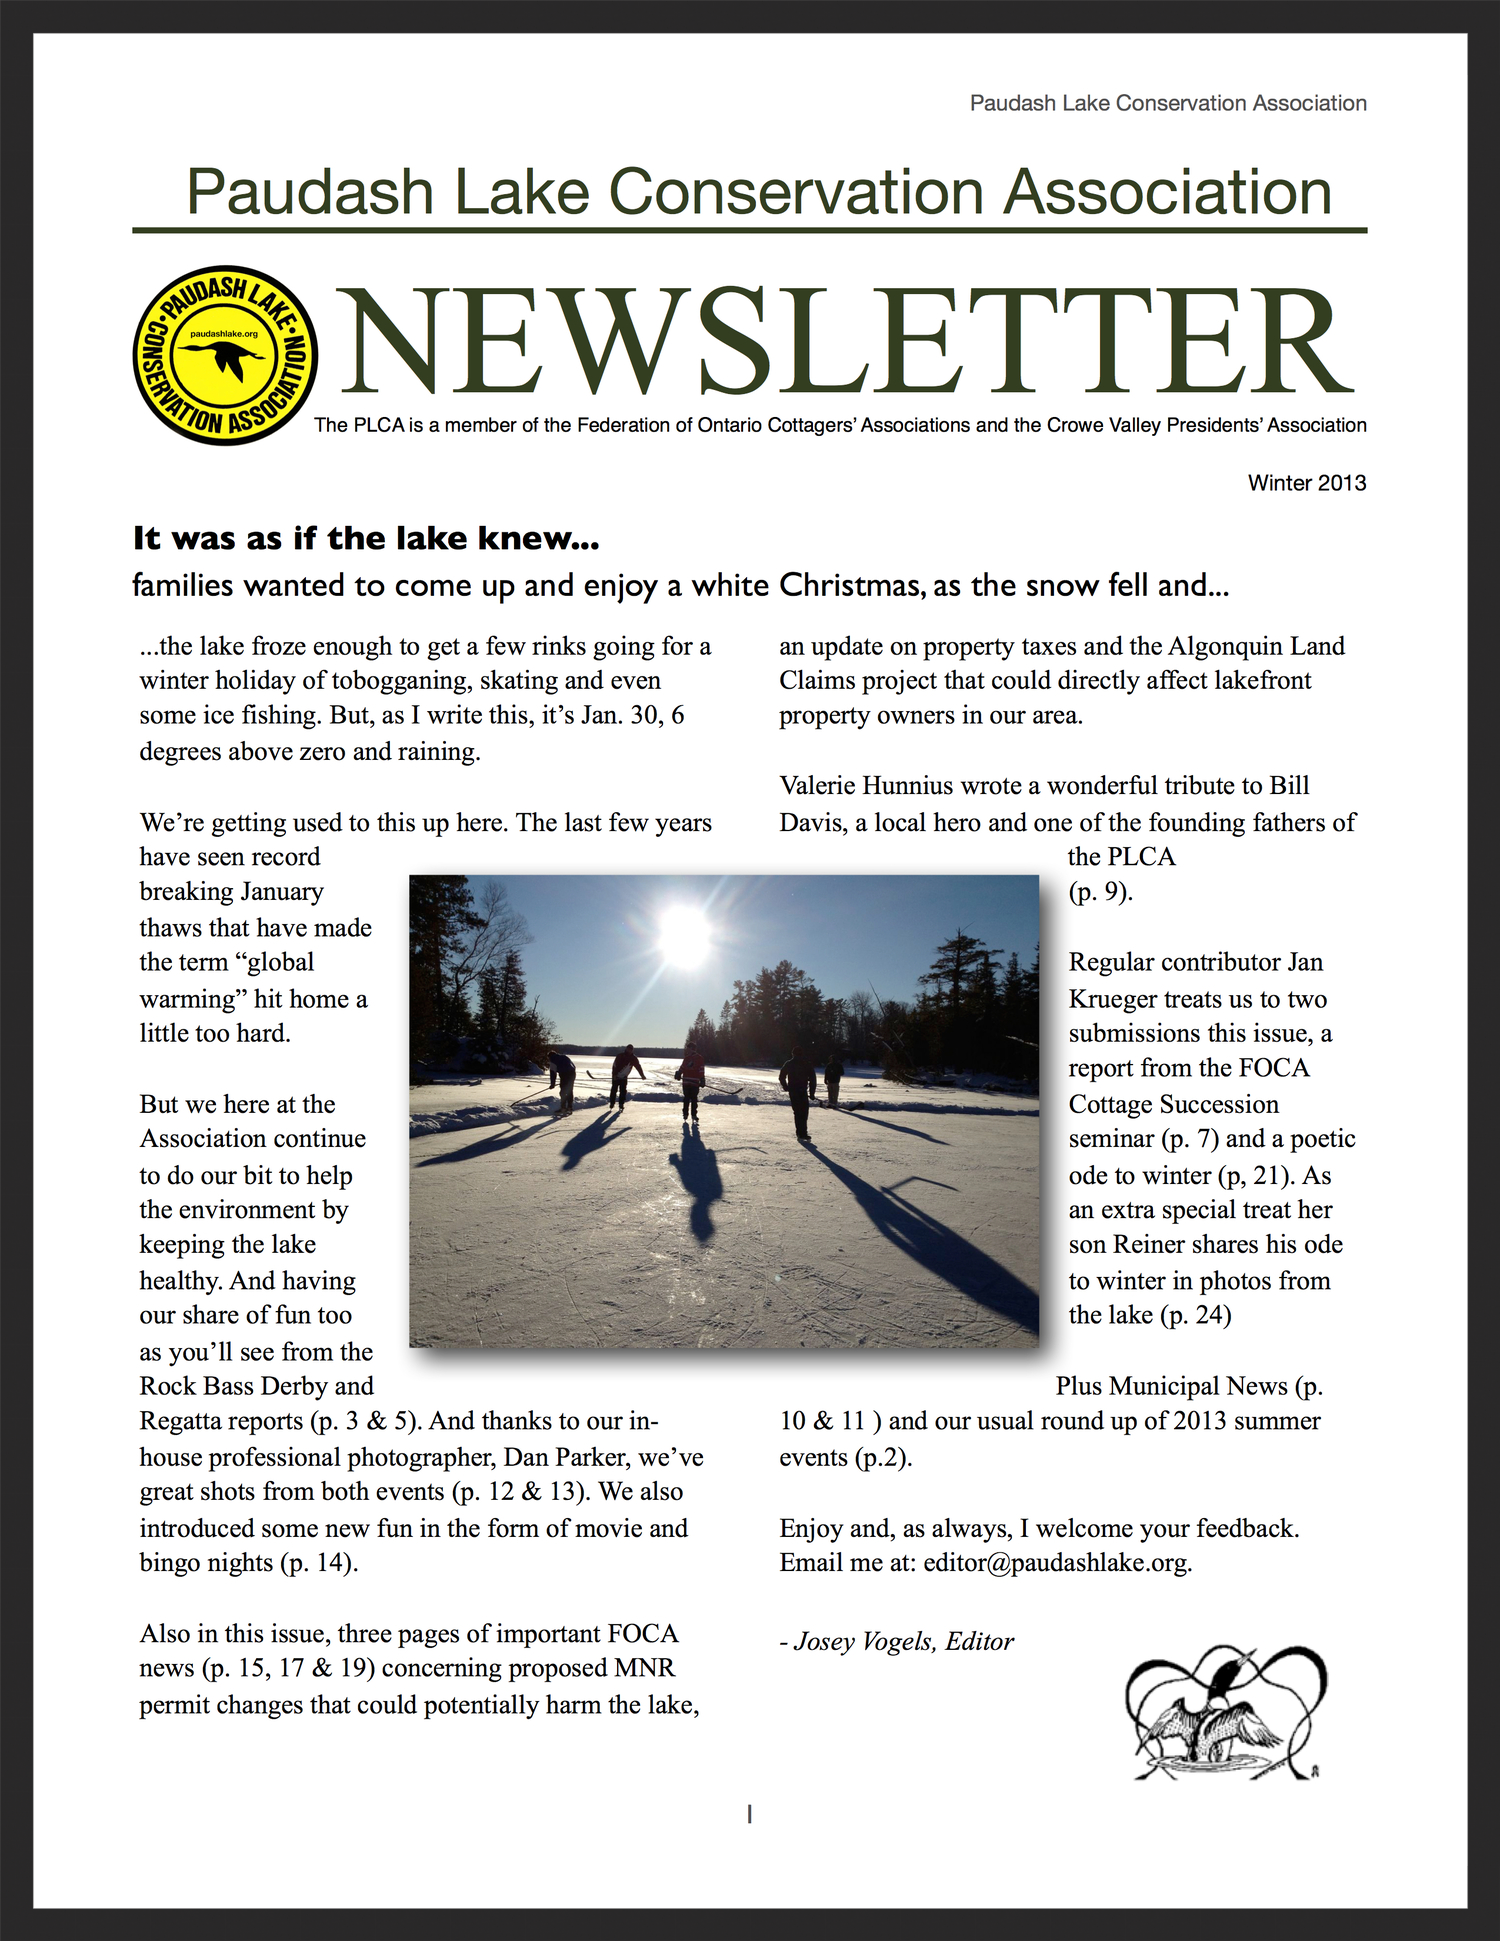 PLCA Newsletter, winter 2013